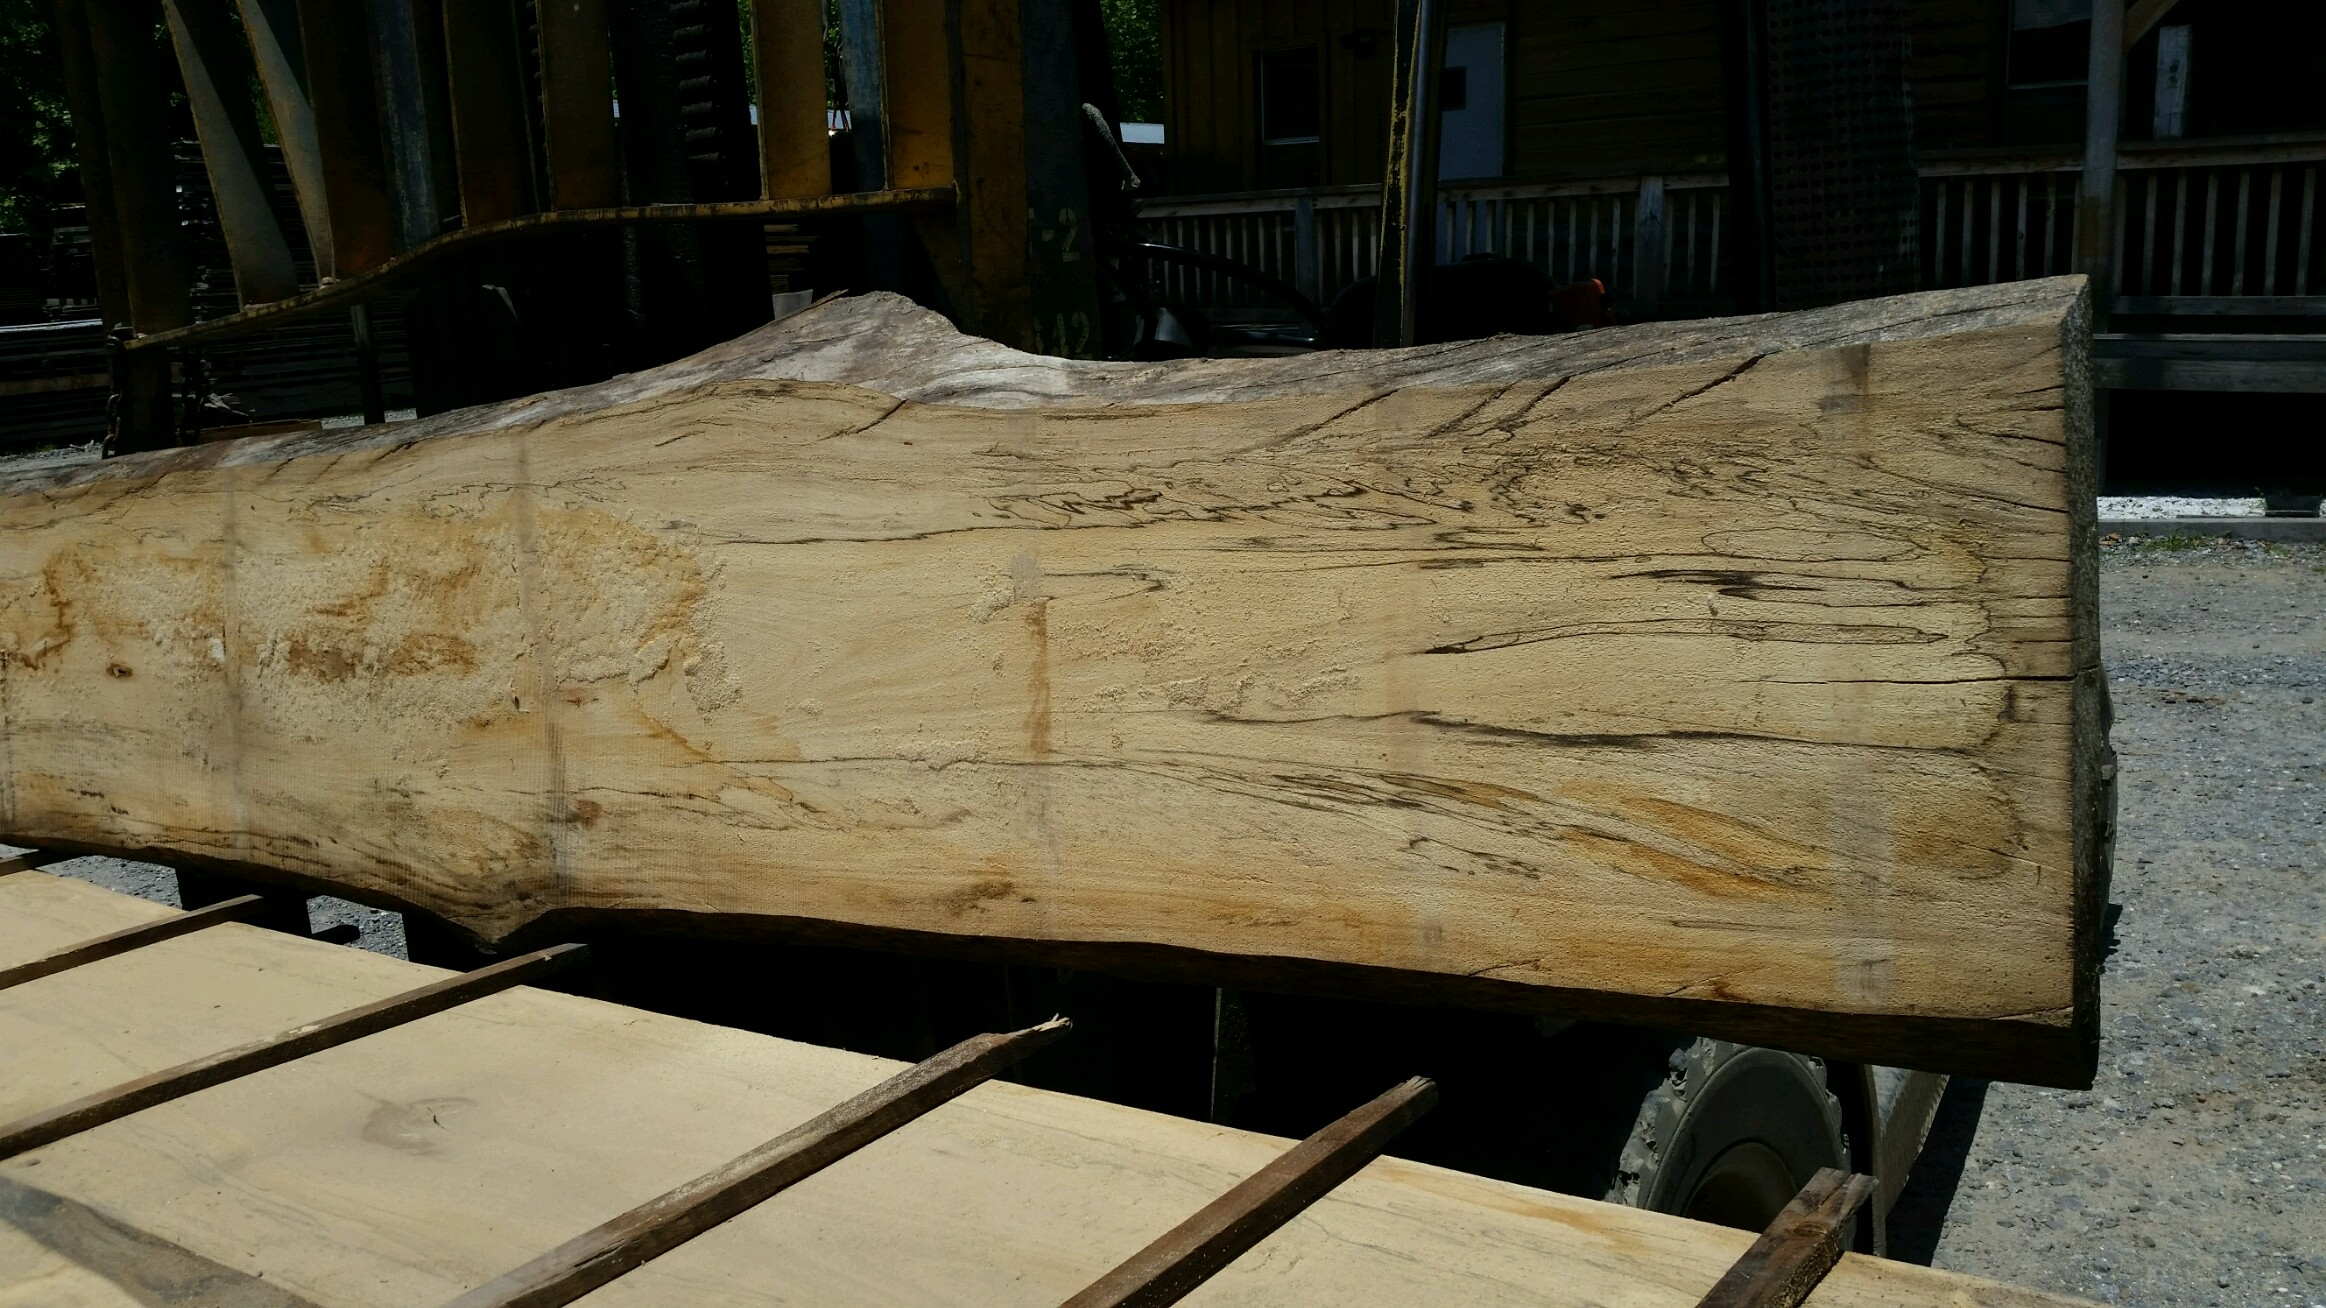 Products | Bee Tree Hardwoods | Family-Owned Lumber Business